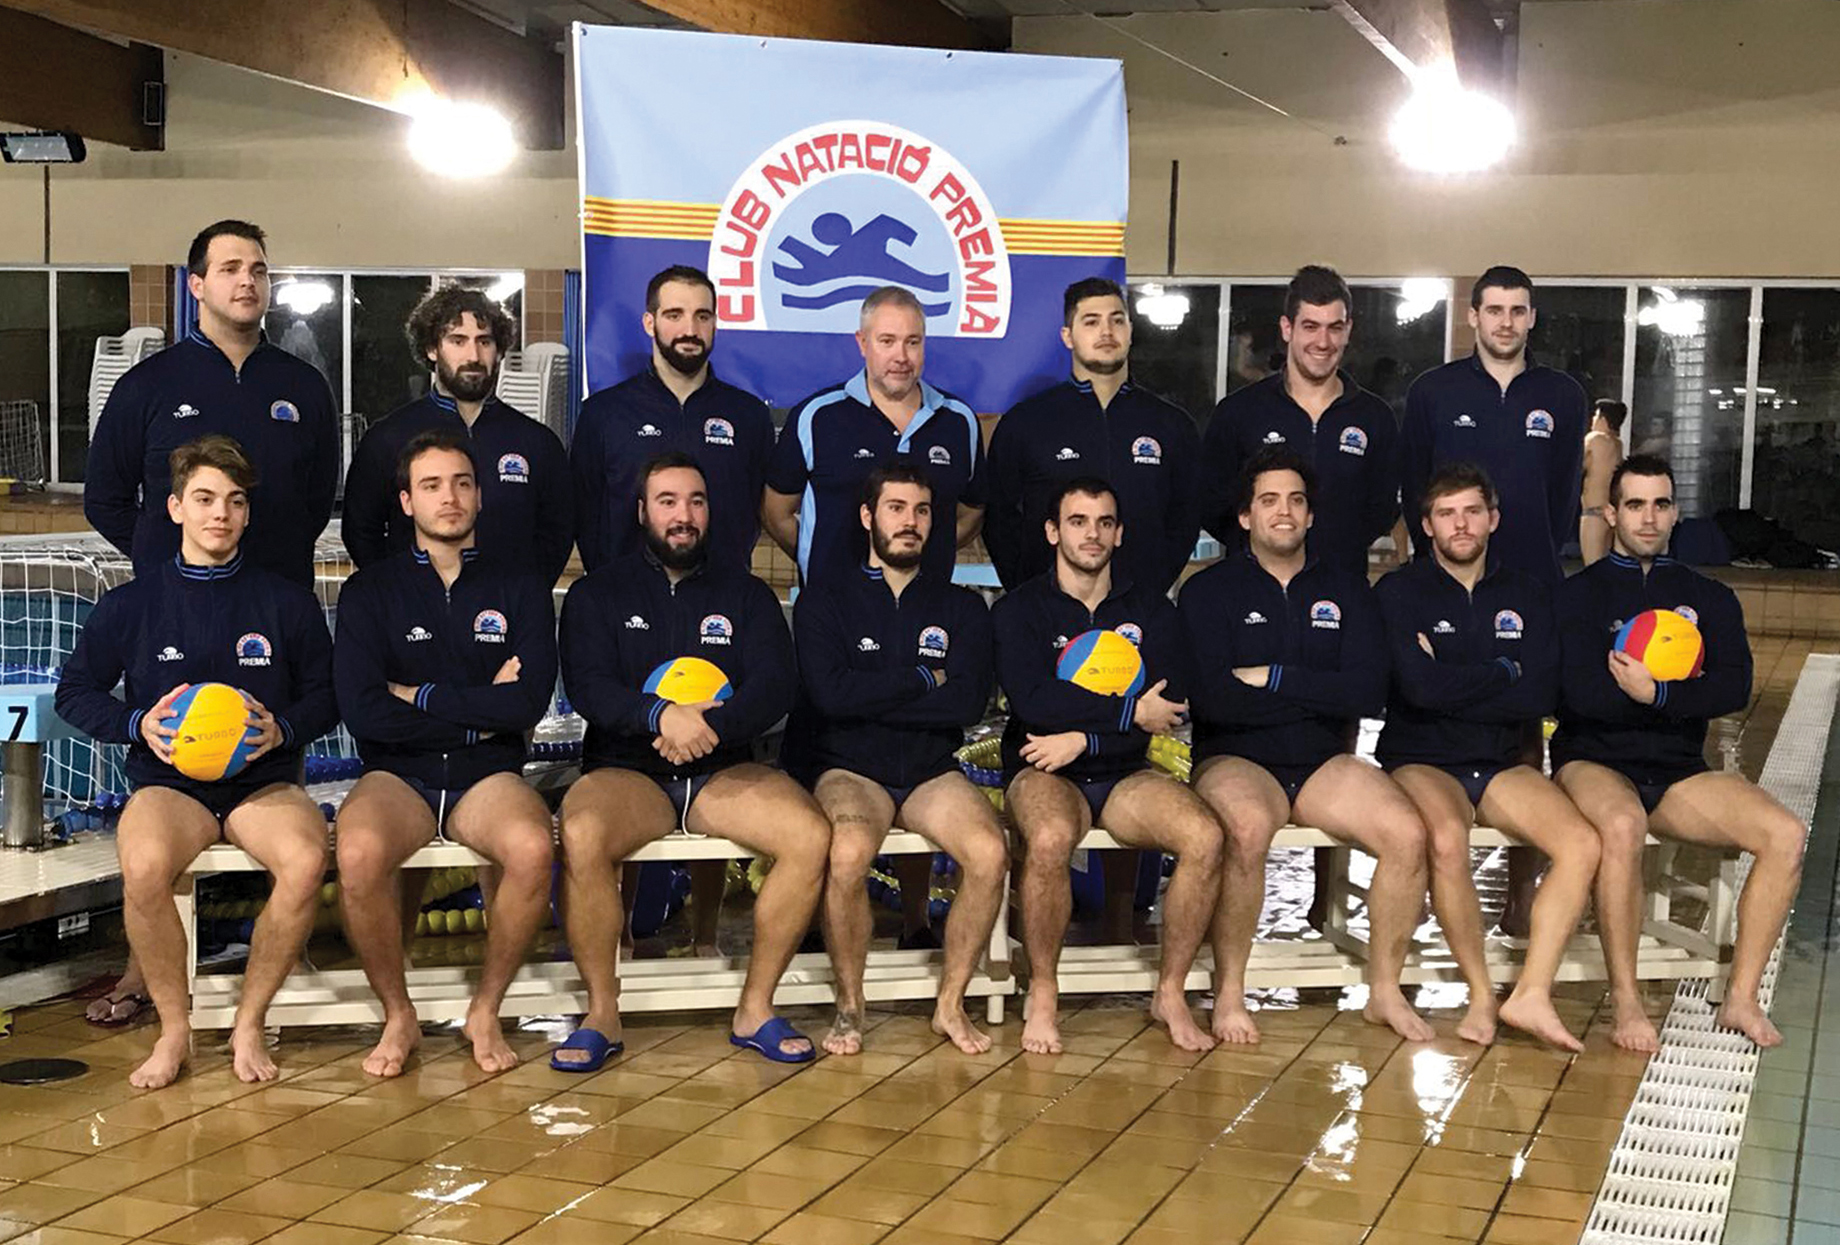 http://cnpremia.cat/new-web/wp-content/uploads/2018/04/waterpolo-absolut-2018-copy.jpg